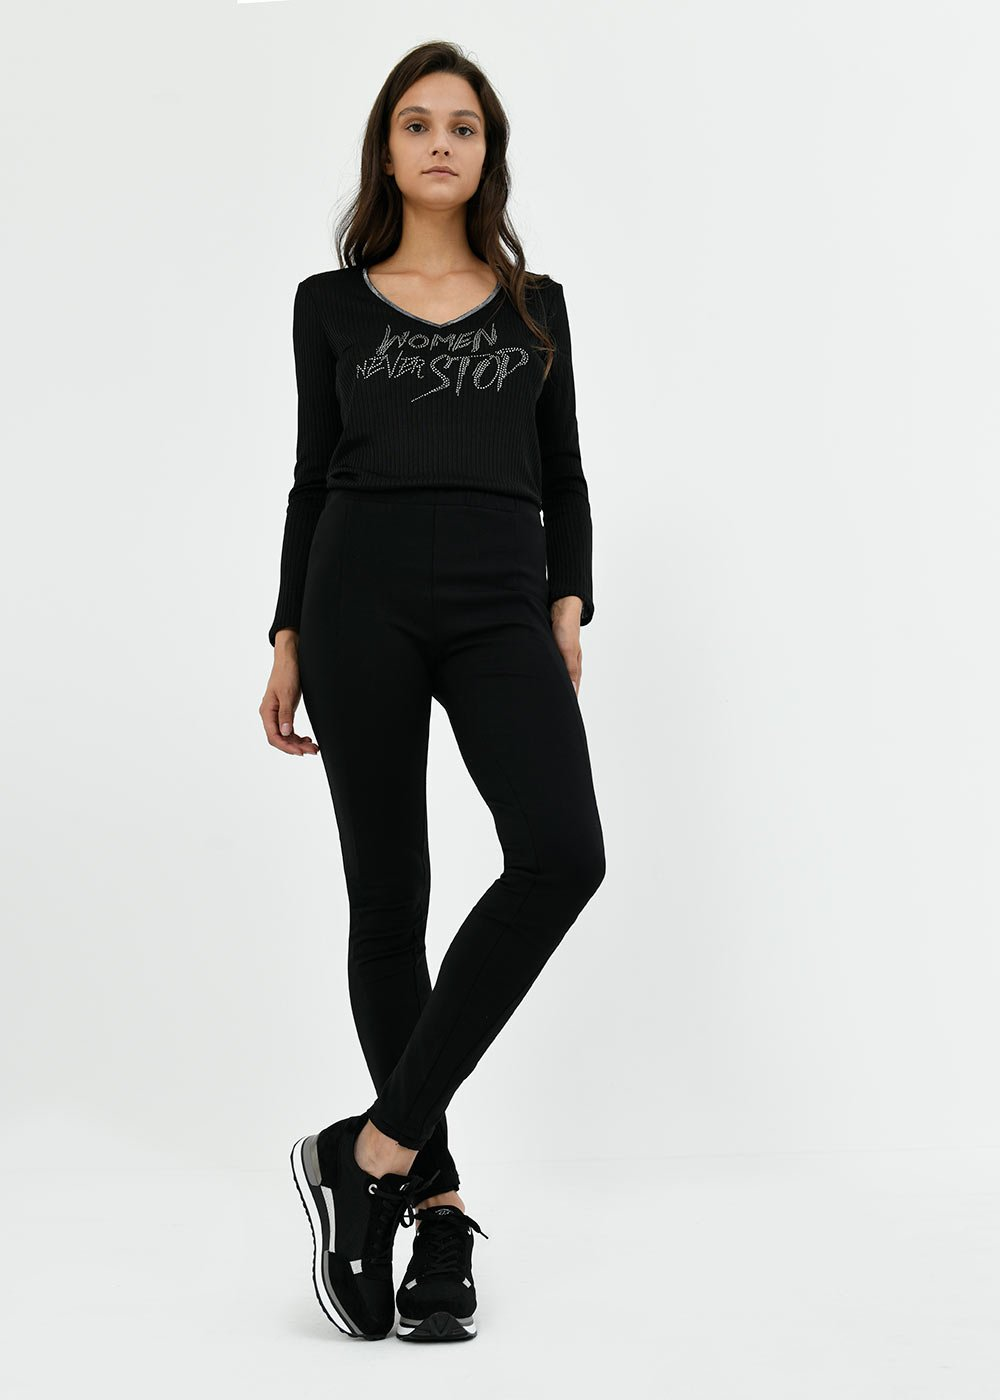 Leggins Leroy in punto milano - Black - Donna